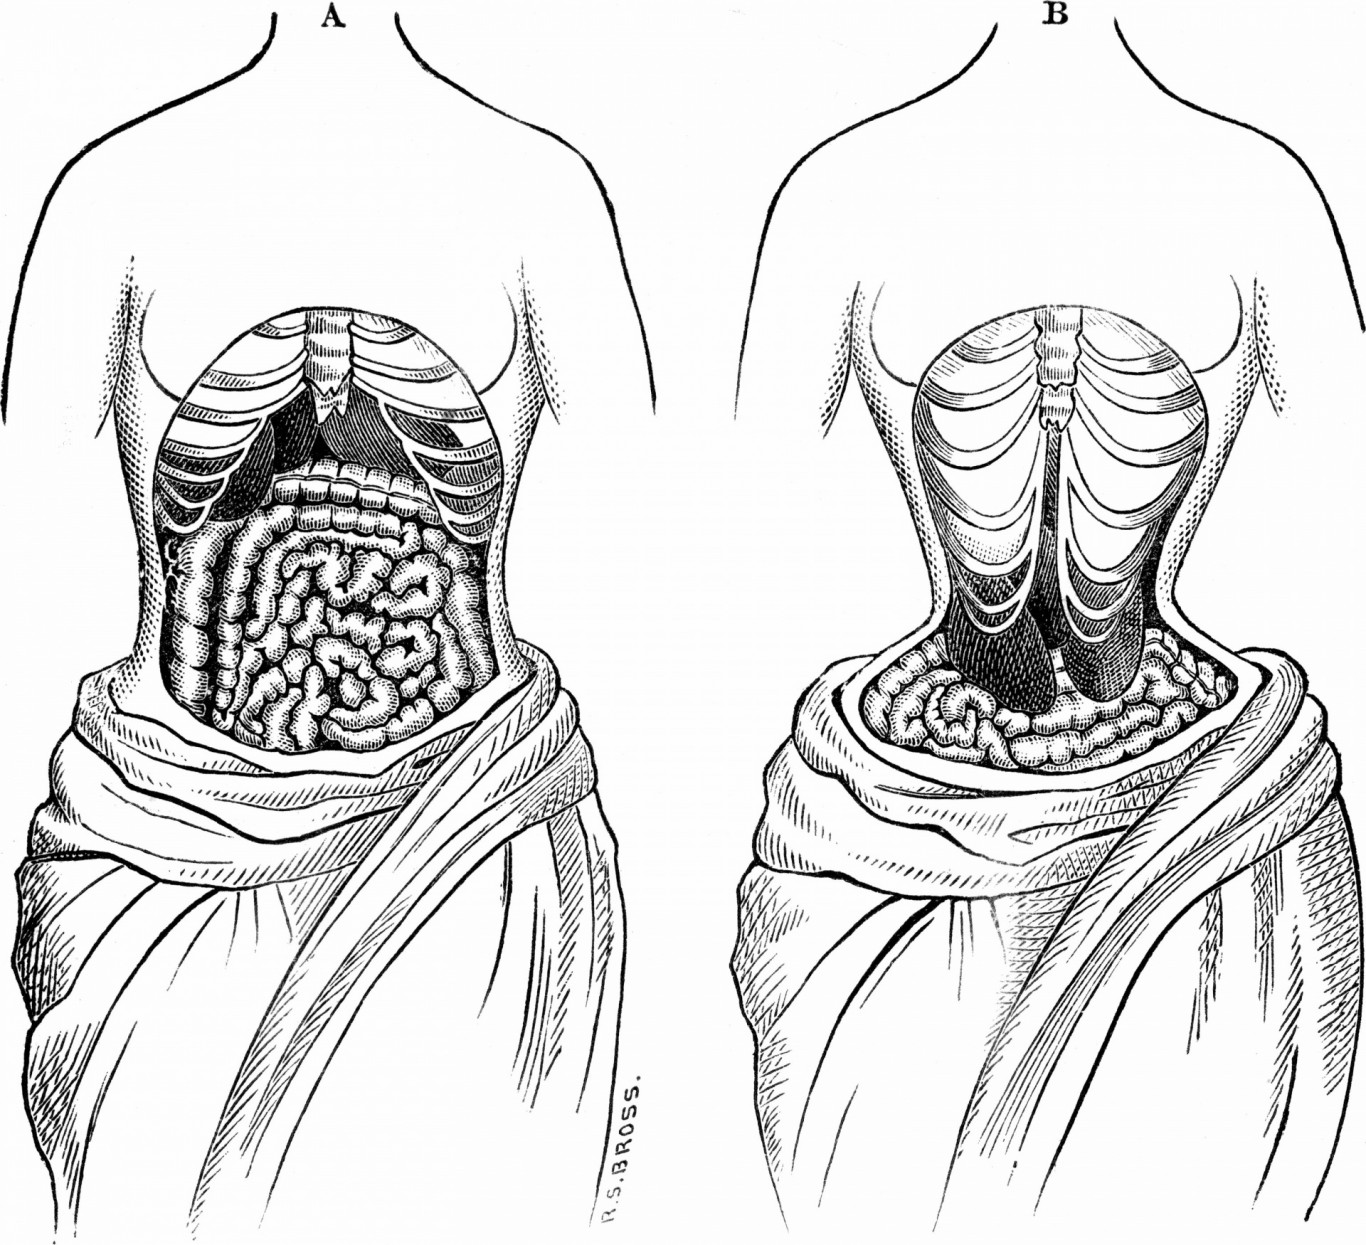 Are Waist Trainers Bad for you?